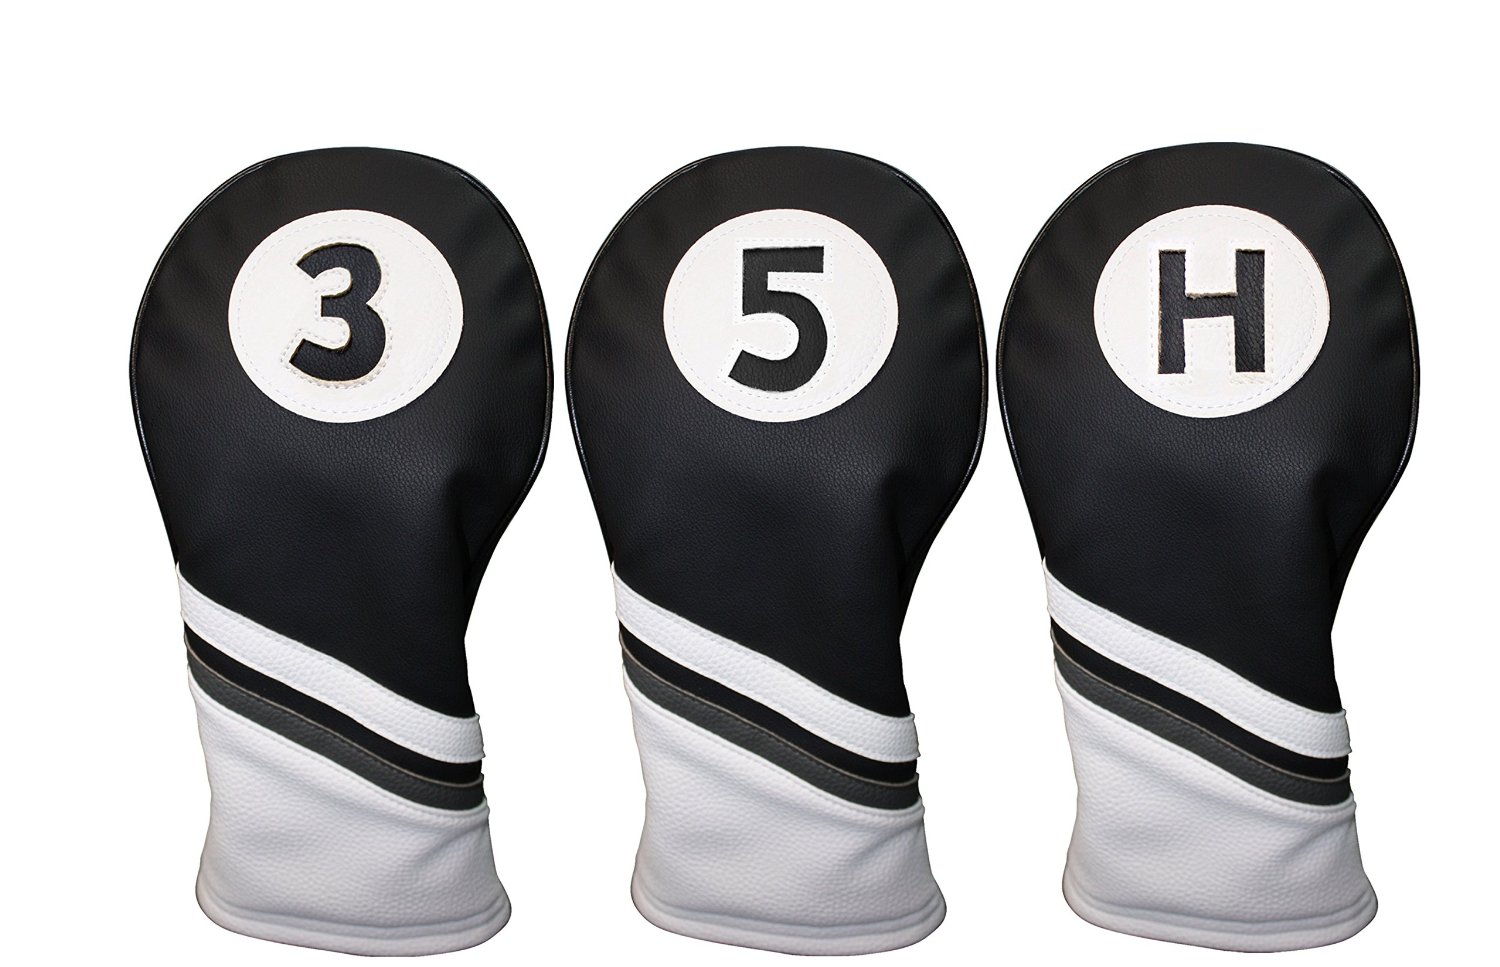 Golf Headcovers Black and White Leather Style 3, 5, H Fairway Head Covers